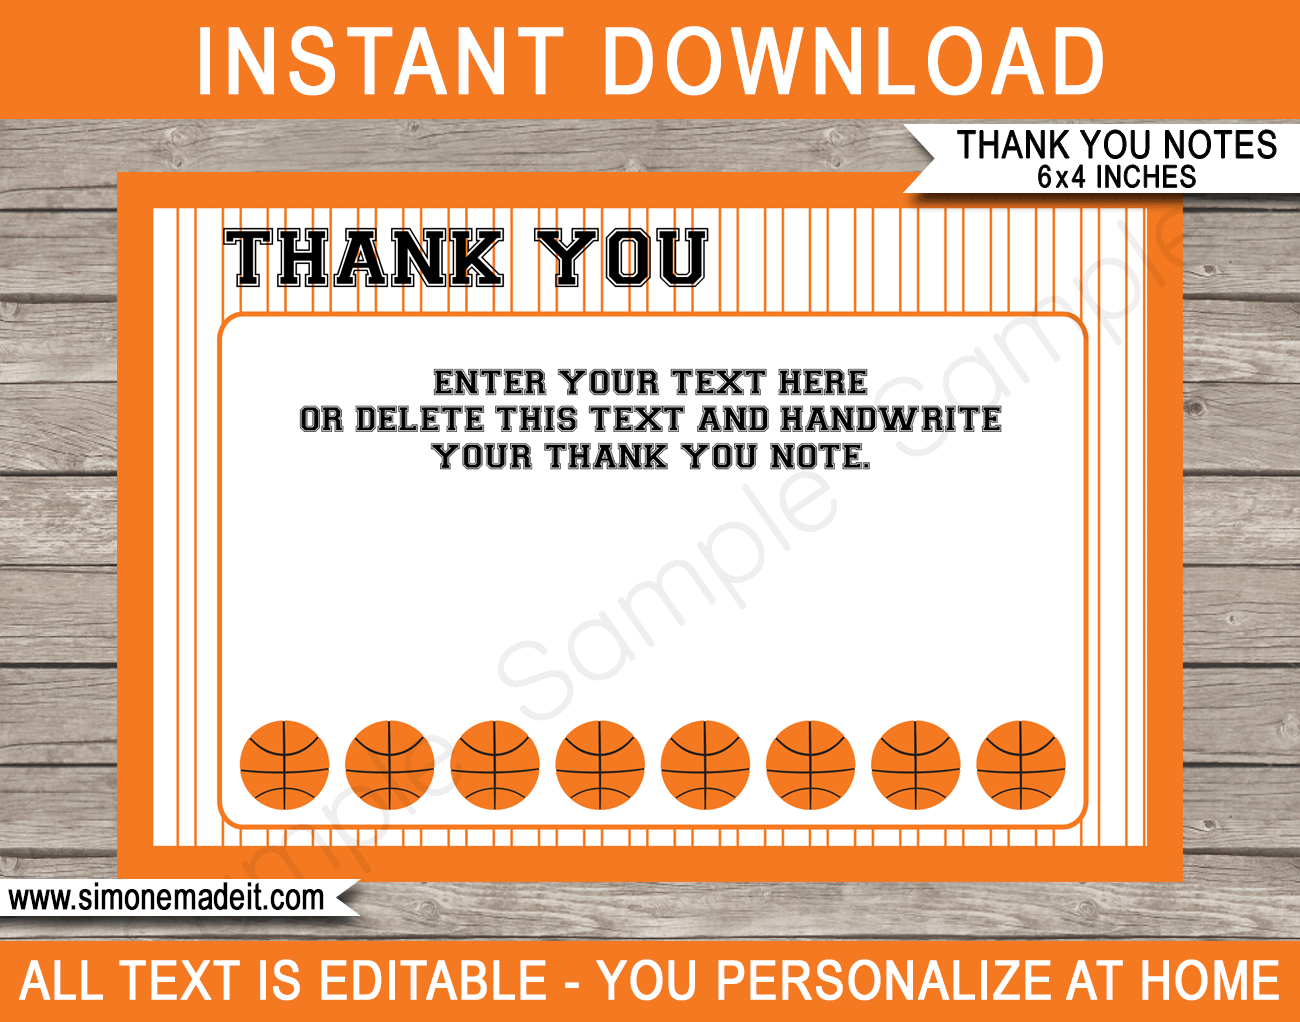 Printable Basketball Party Thank You Cards - Favor Tags - Basketball Birthday Party theme - March Madness Party - Editable Template - Instant Download via simonemadeit.com